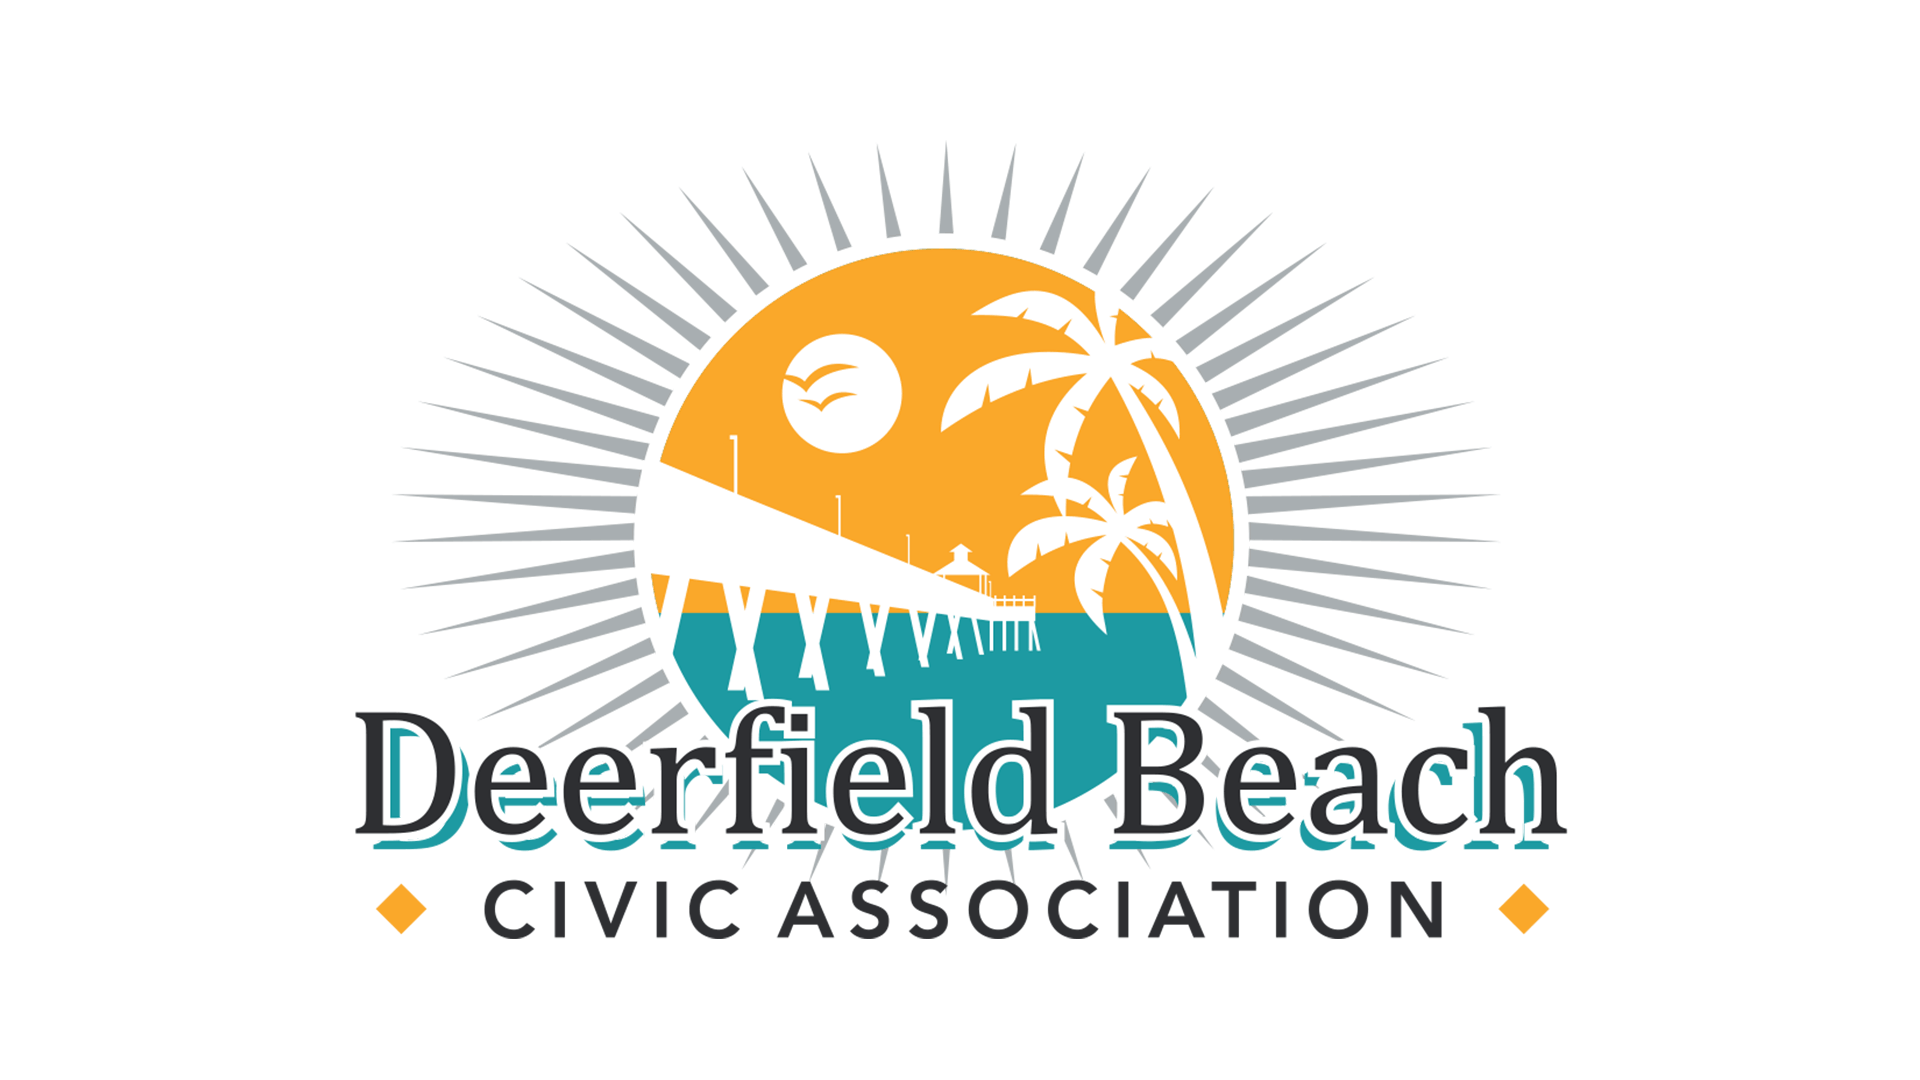 BRIAN HILL DESIGN: Deerfield Beach Civic Association